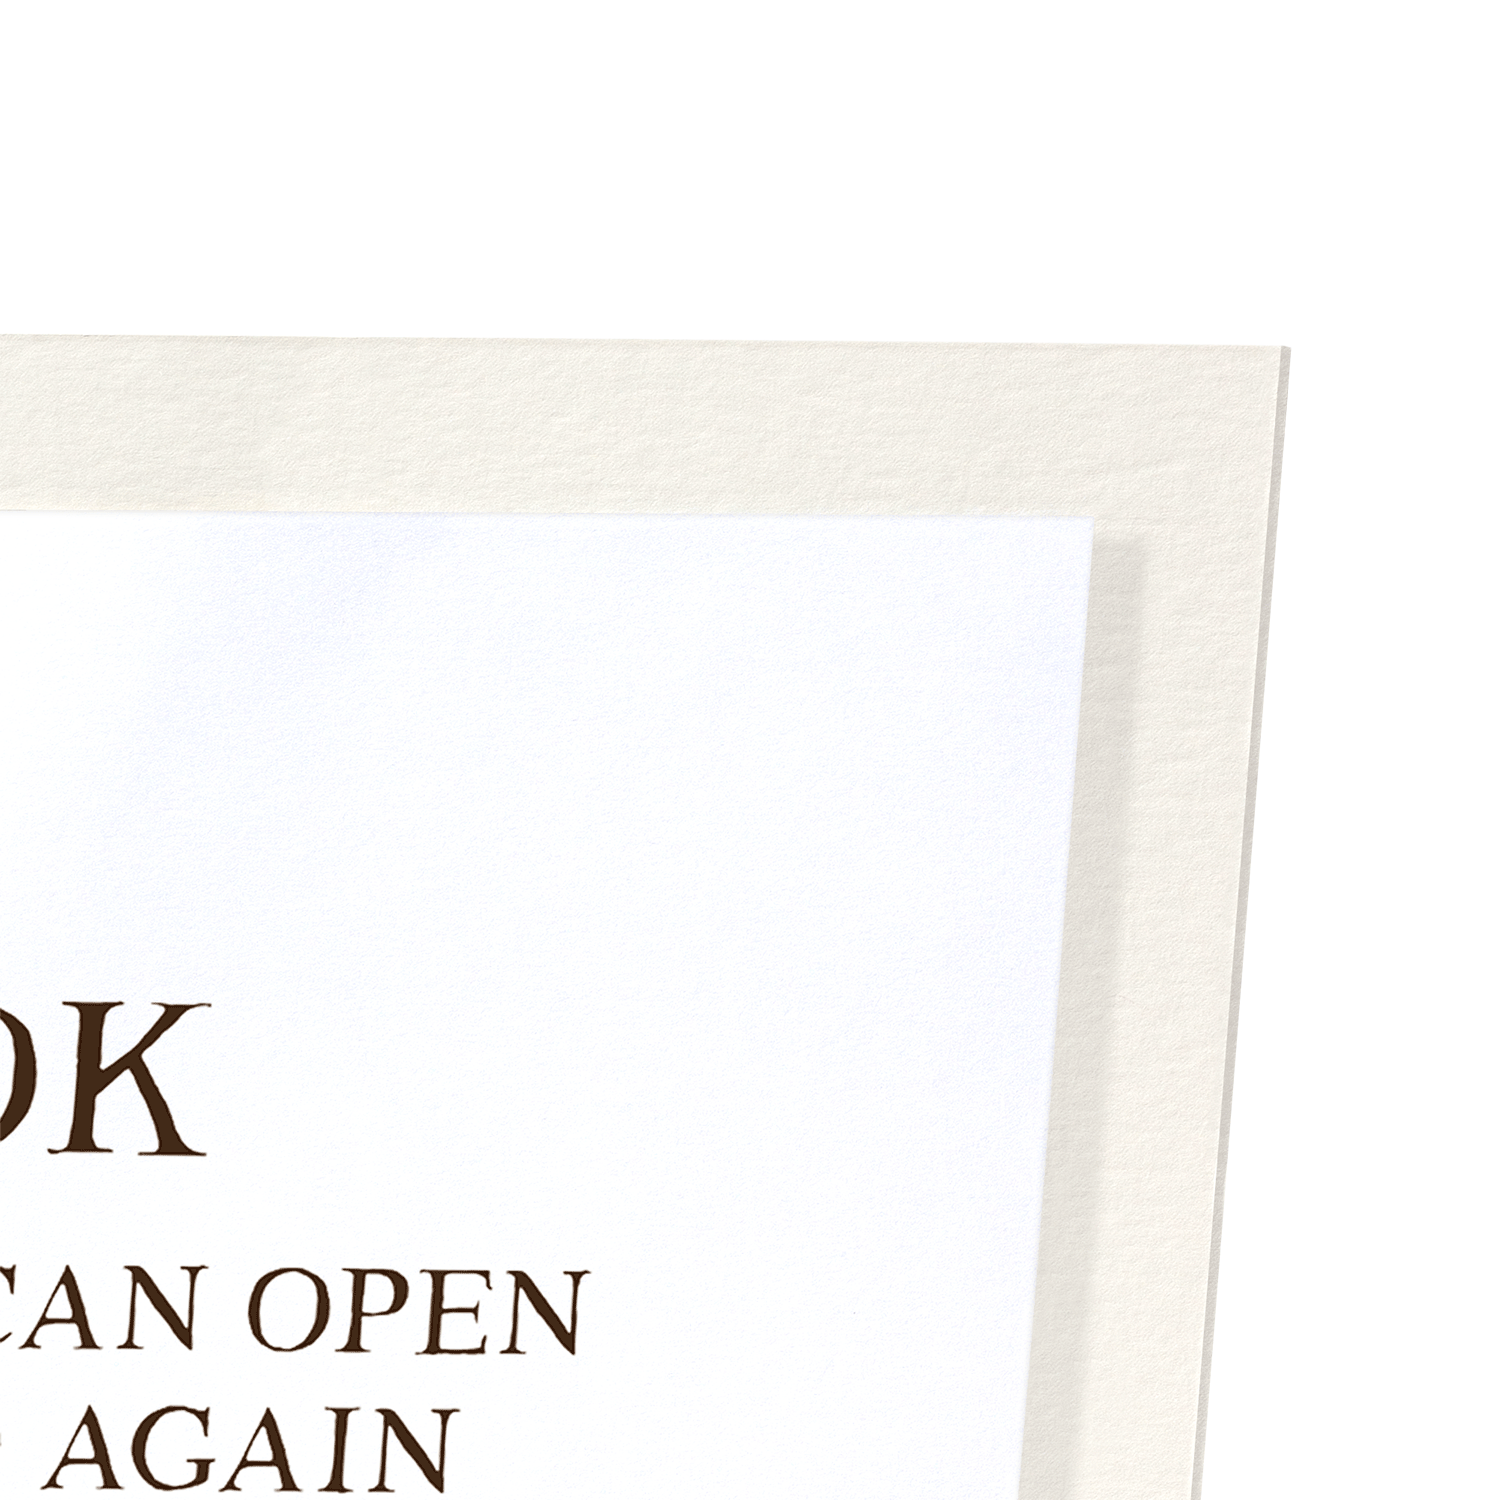 A BOOK IS A GIFT: 2xPrints